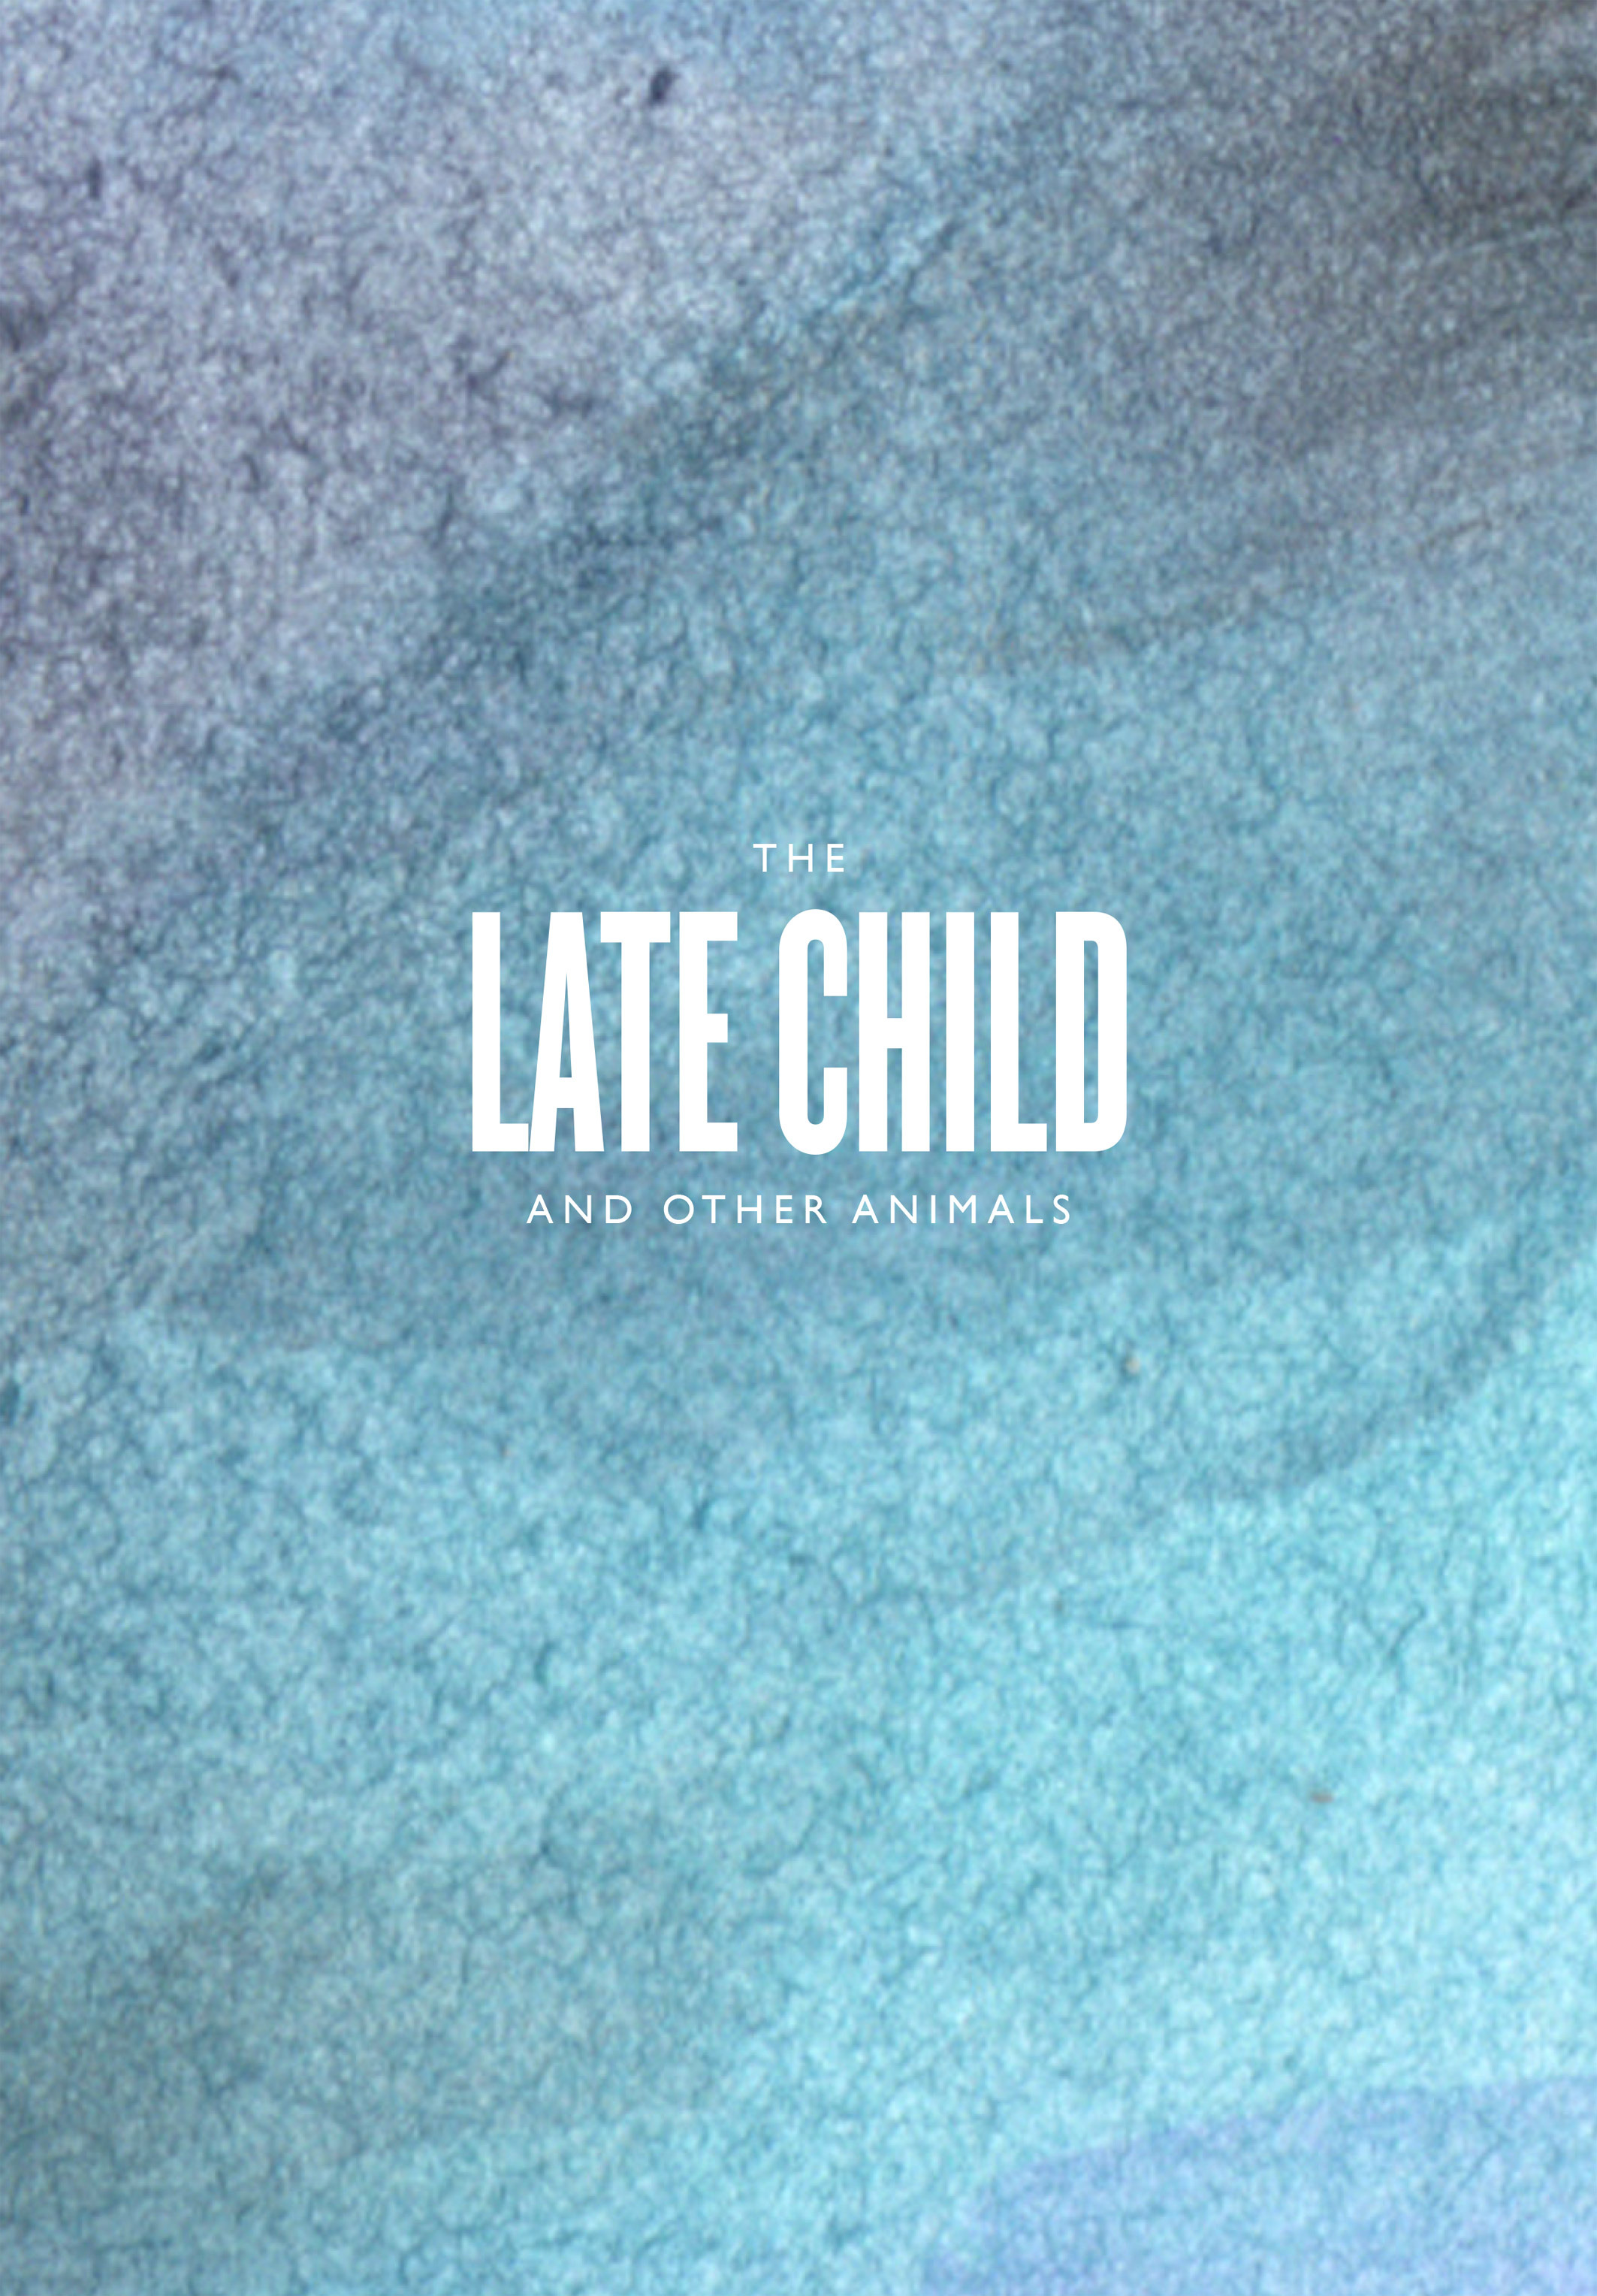 Read online The Late Child and Other Animals comic -  Issue #1 - 2